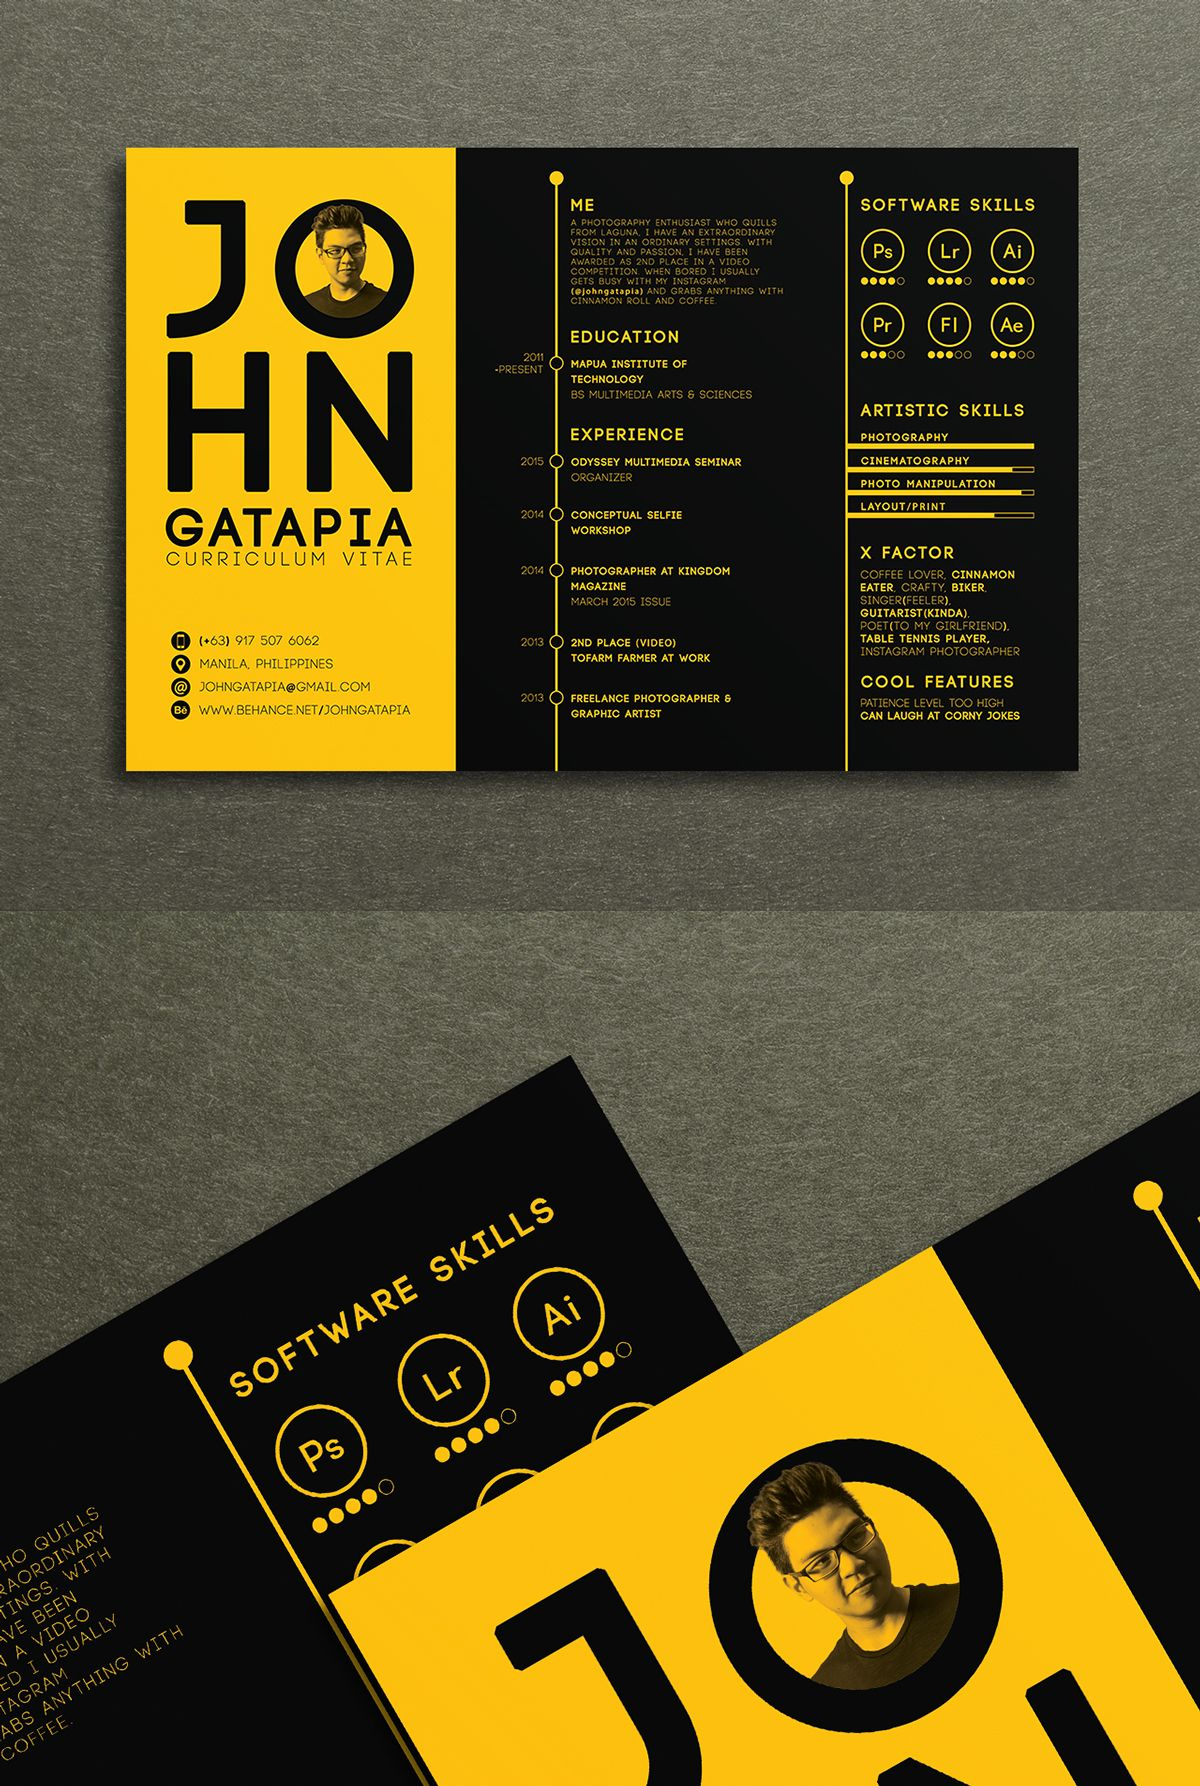 Creative Curriculum Vitae Resume On Behance Design Pinterest